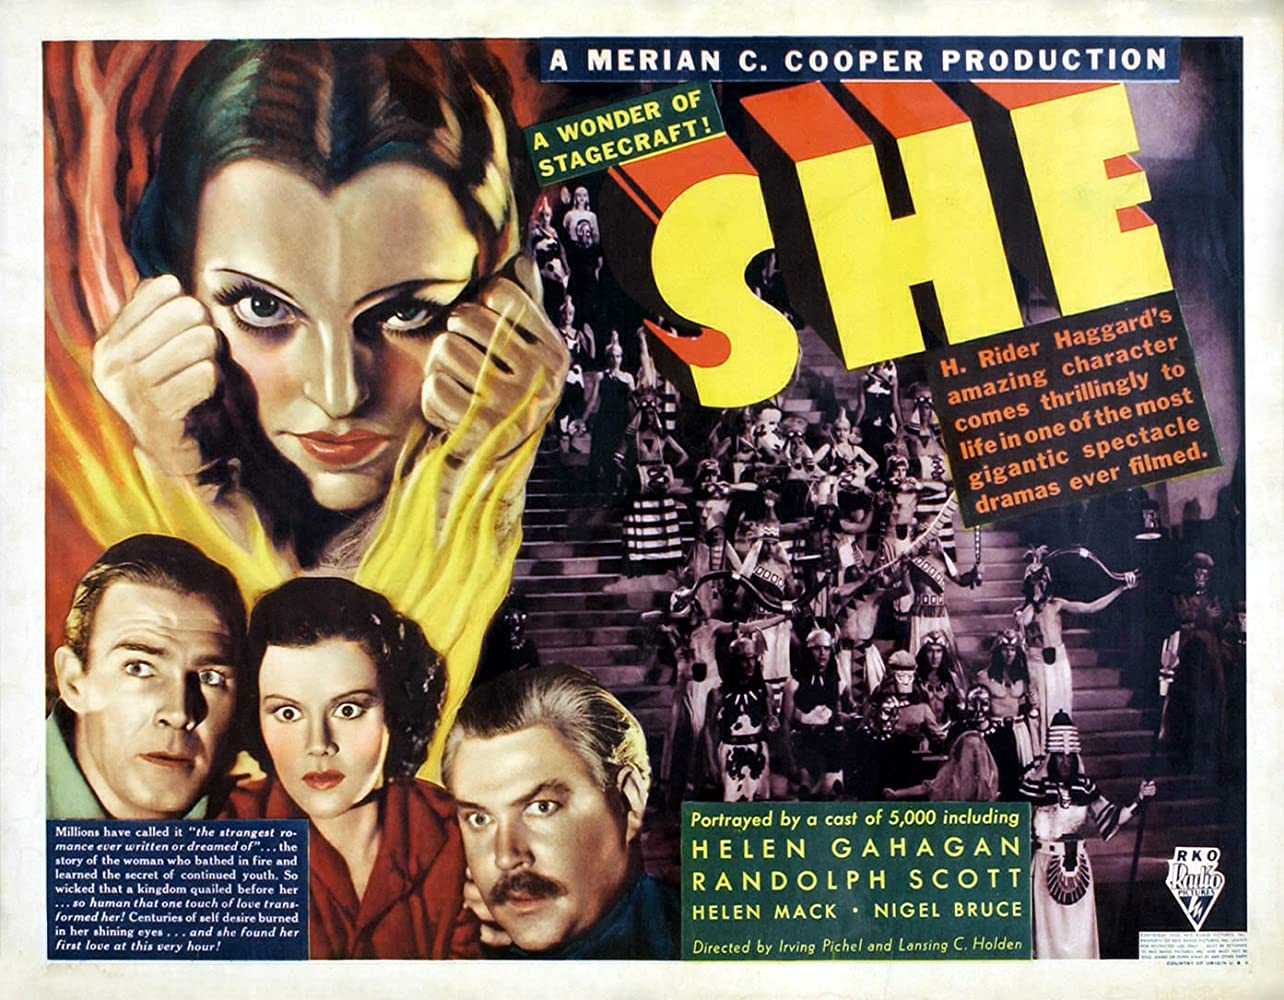 Randolph Scott, Nigel Bruce, Helen Gahagan, and Helen Mack in She (1935)